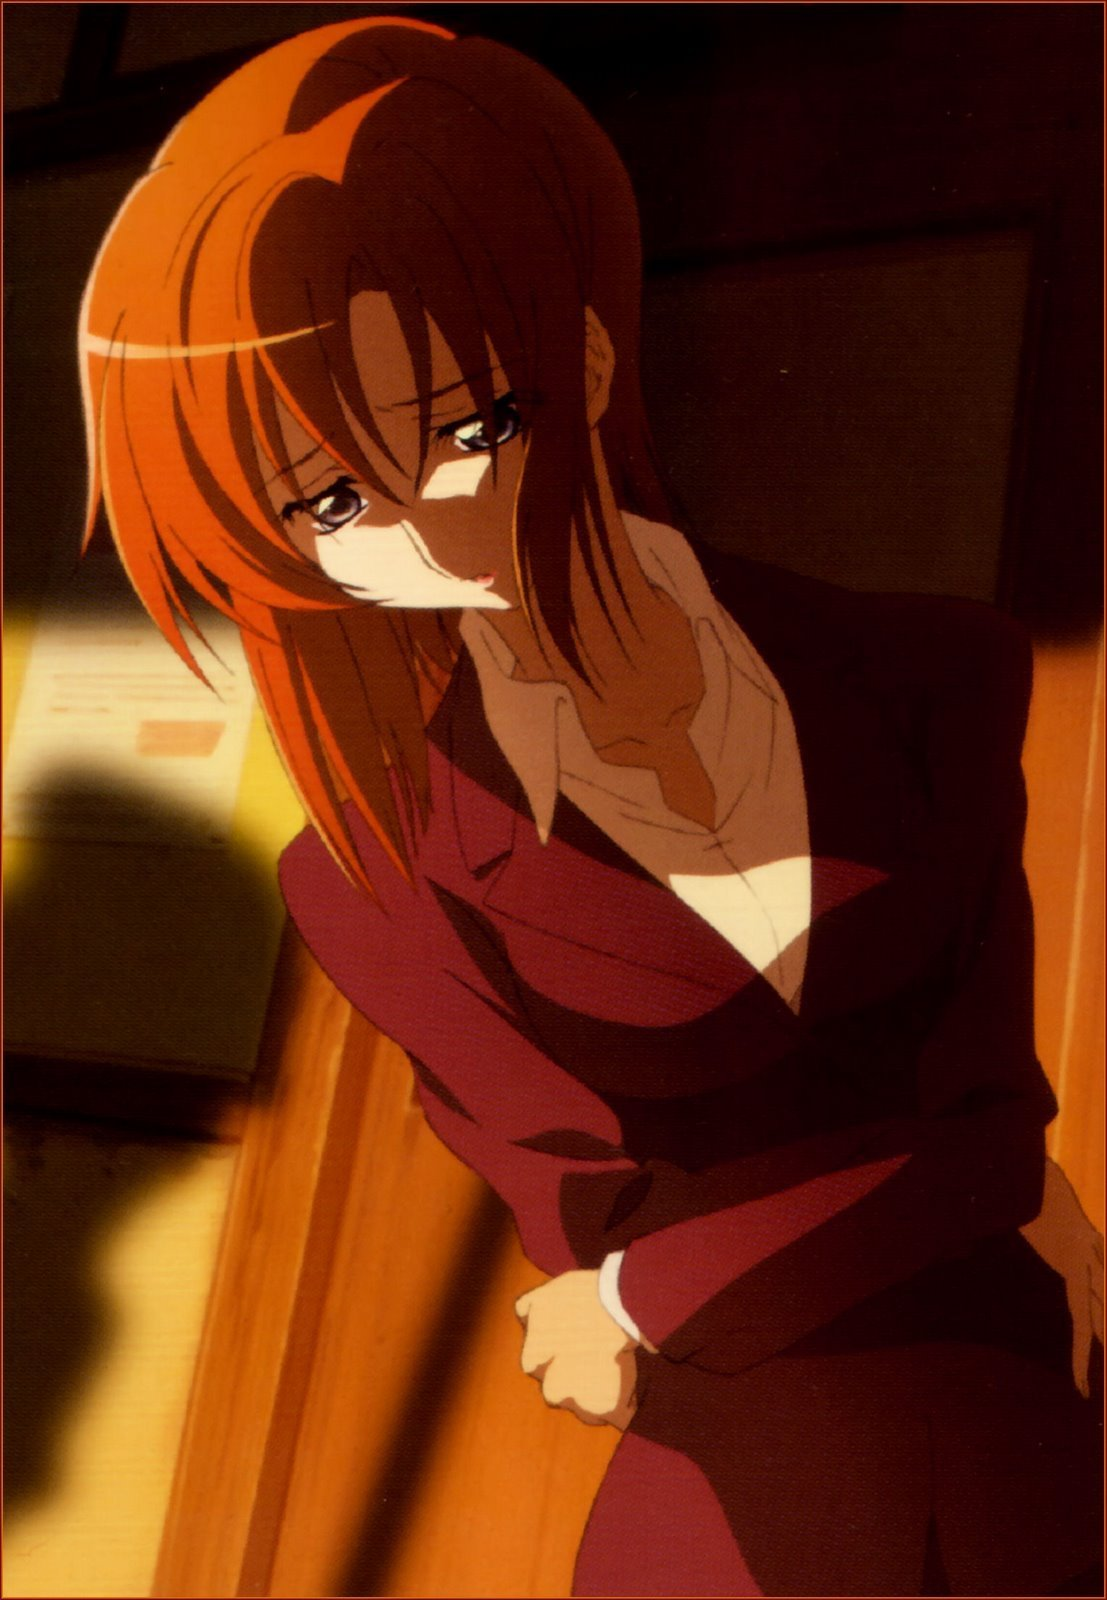 Adult Rena Higurashi No Naku Koro Ni Photo 12496078 Fanpop